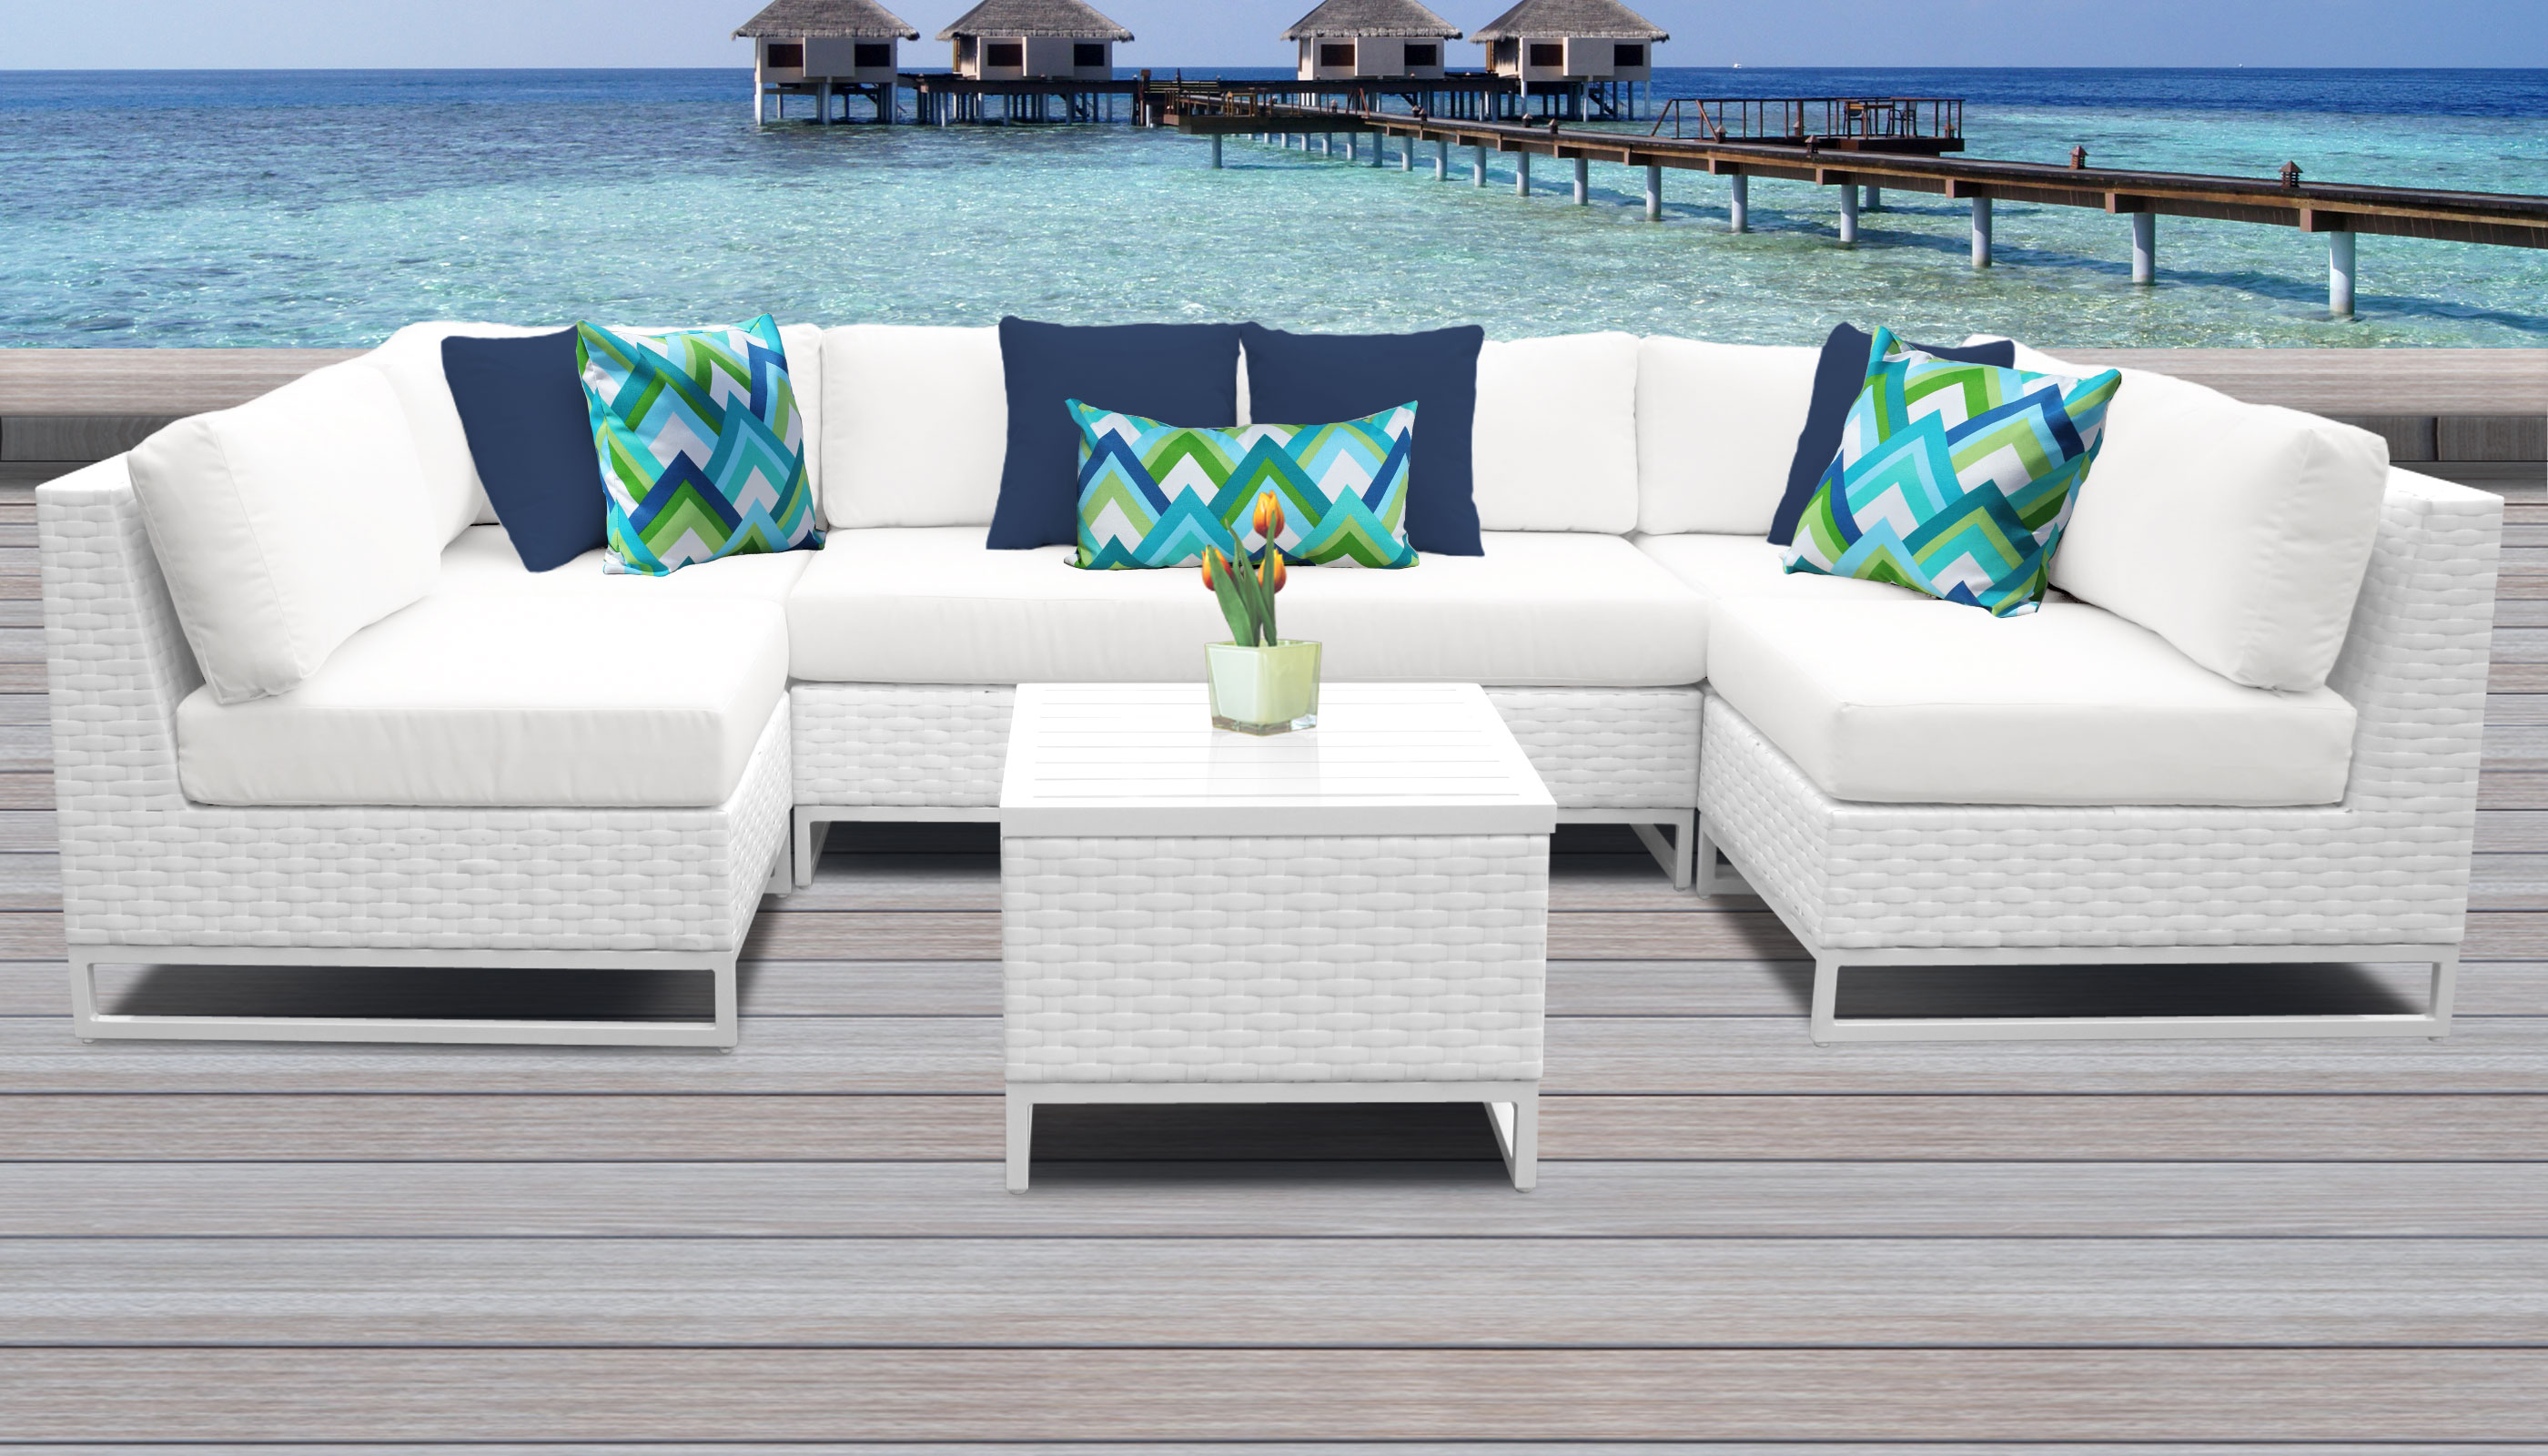 Miami 7 Piece Outdoor Wicker Patio Furniture Set 07d intended for measurements 2800 X 1600